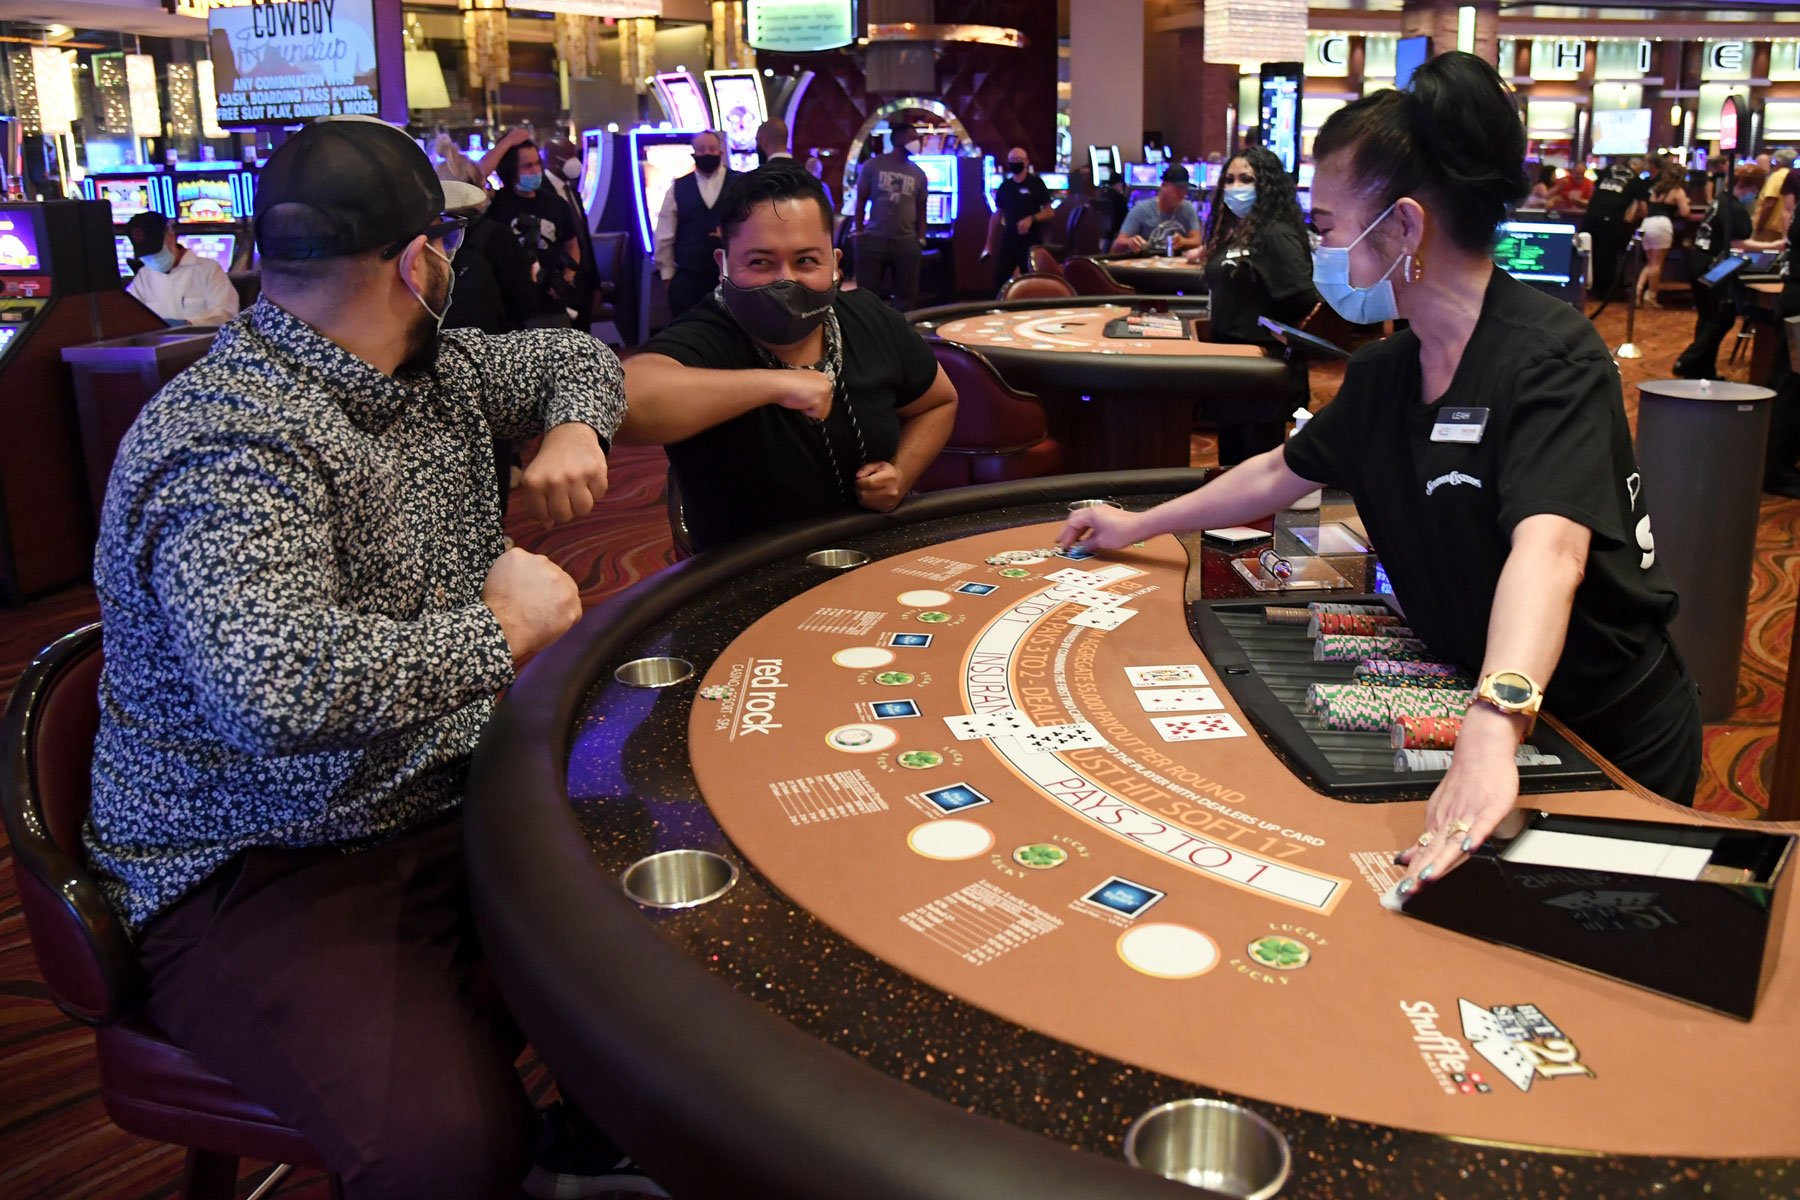 Nevada Casinos, Workers at Risk Under Sisolak's Coronavirus Restrictions